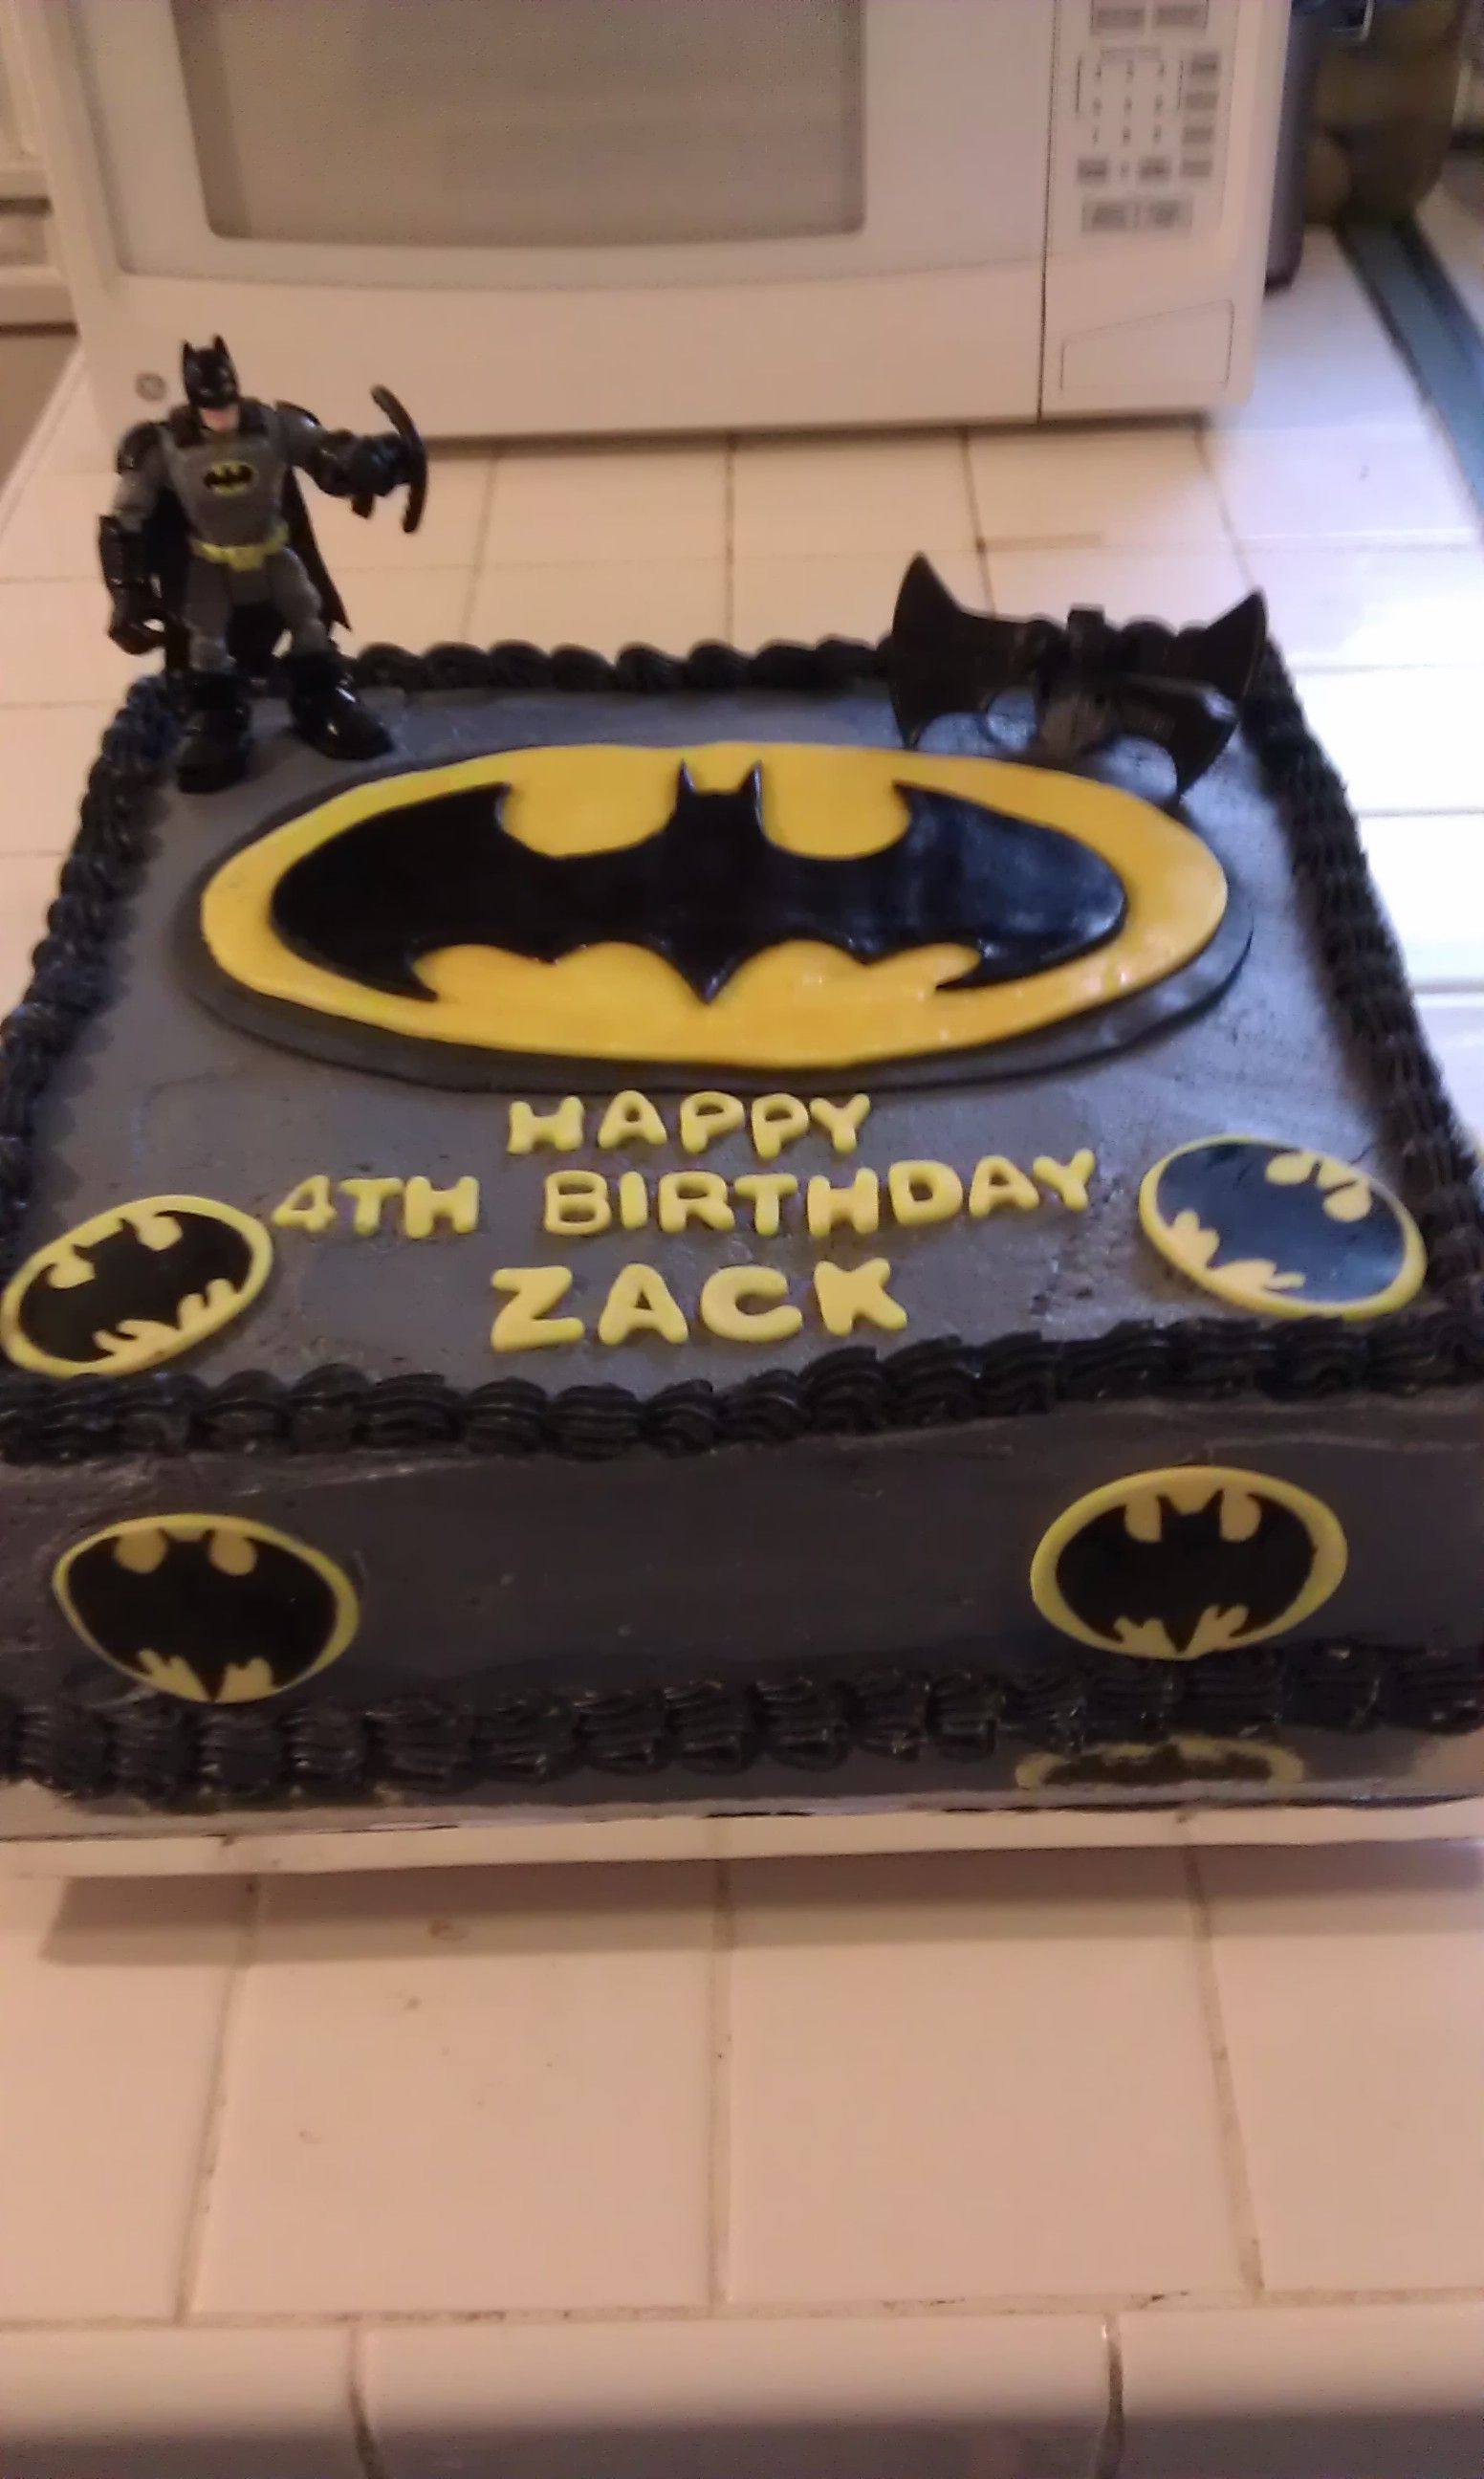 1000 ideas about superman cakes on pinterest batman cakes - Batman Cake Yellow Black Background With Yellow Border